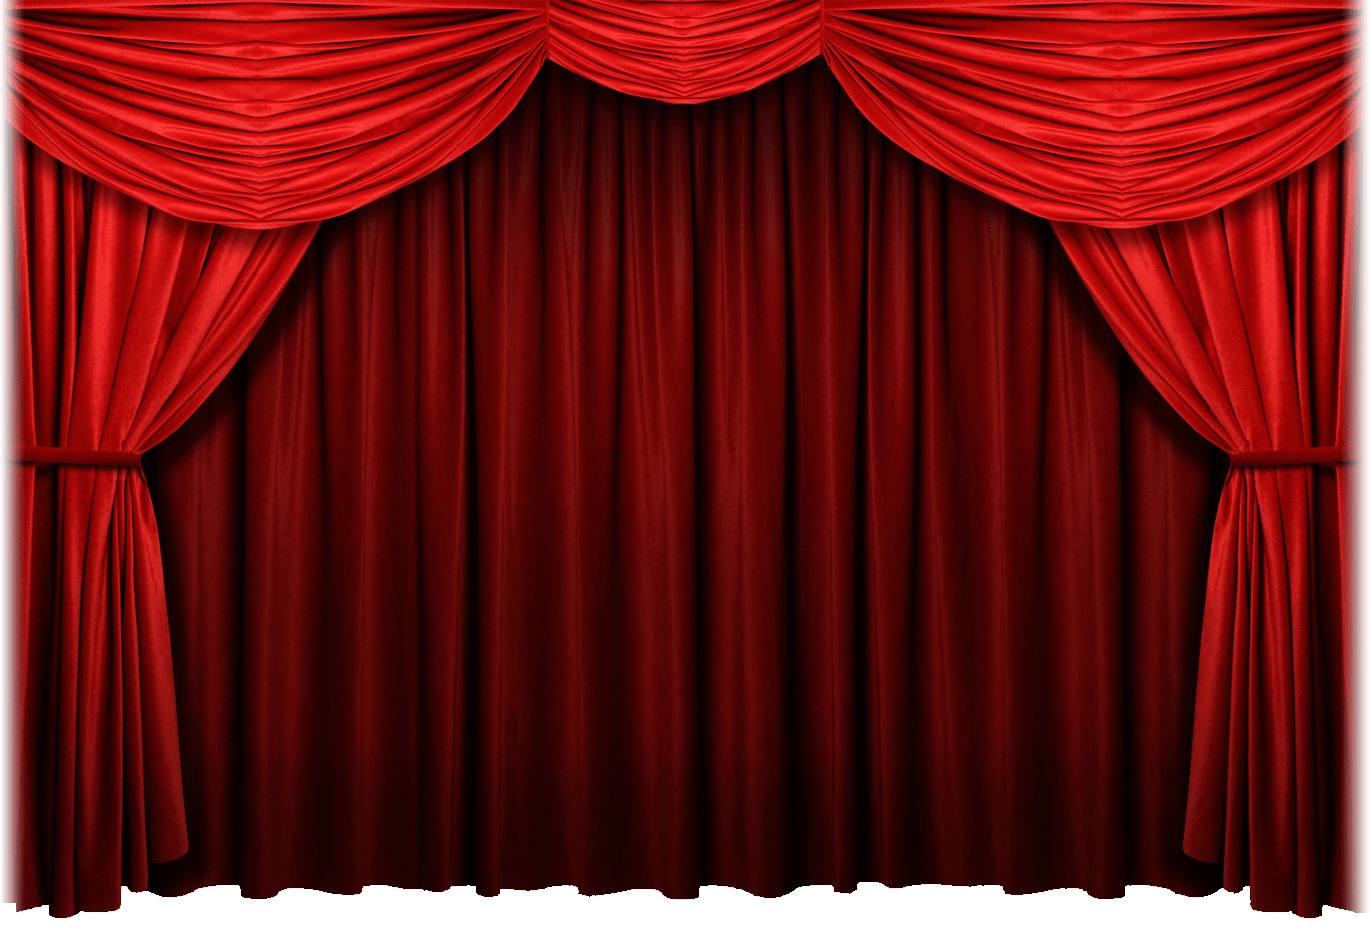 Re Red Curtain Png